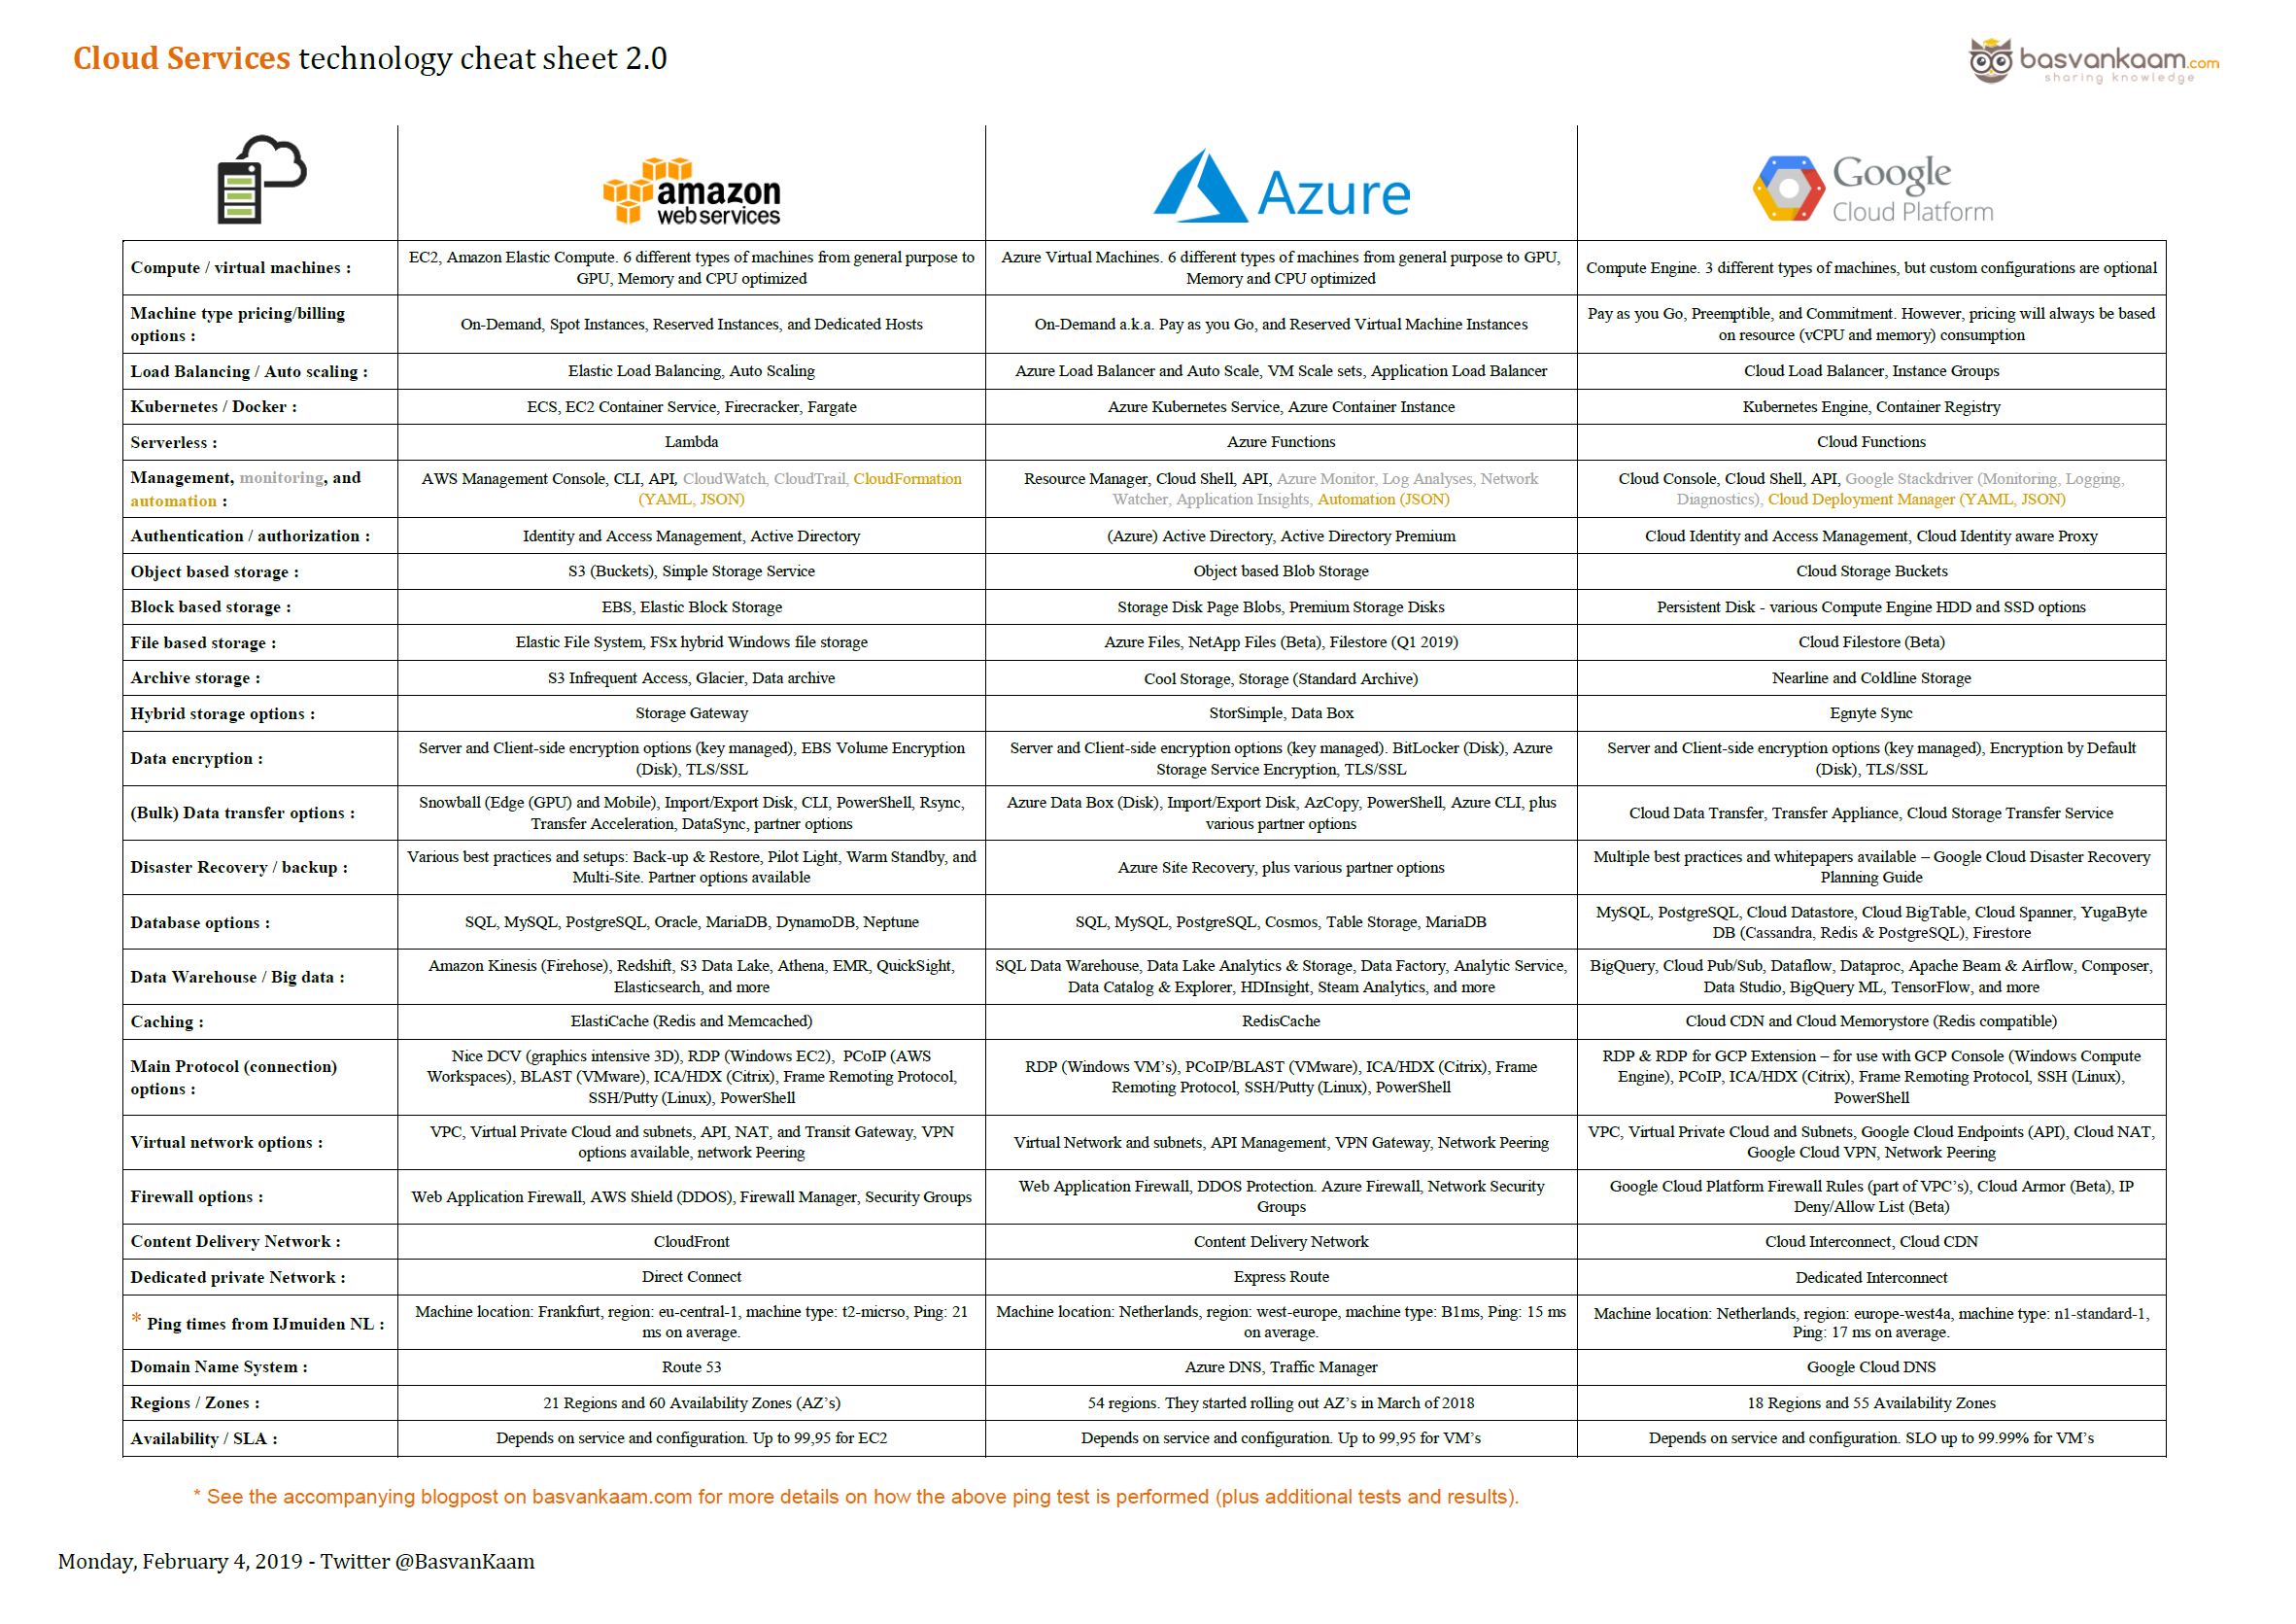 Version 2 0 of the Cloud Services Cheat Sheet is now live  Get it here!